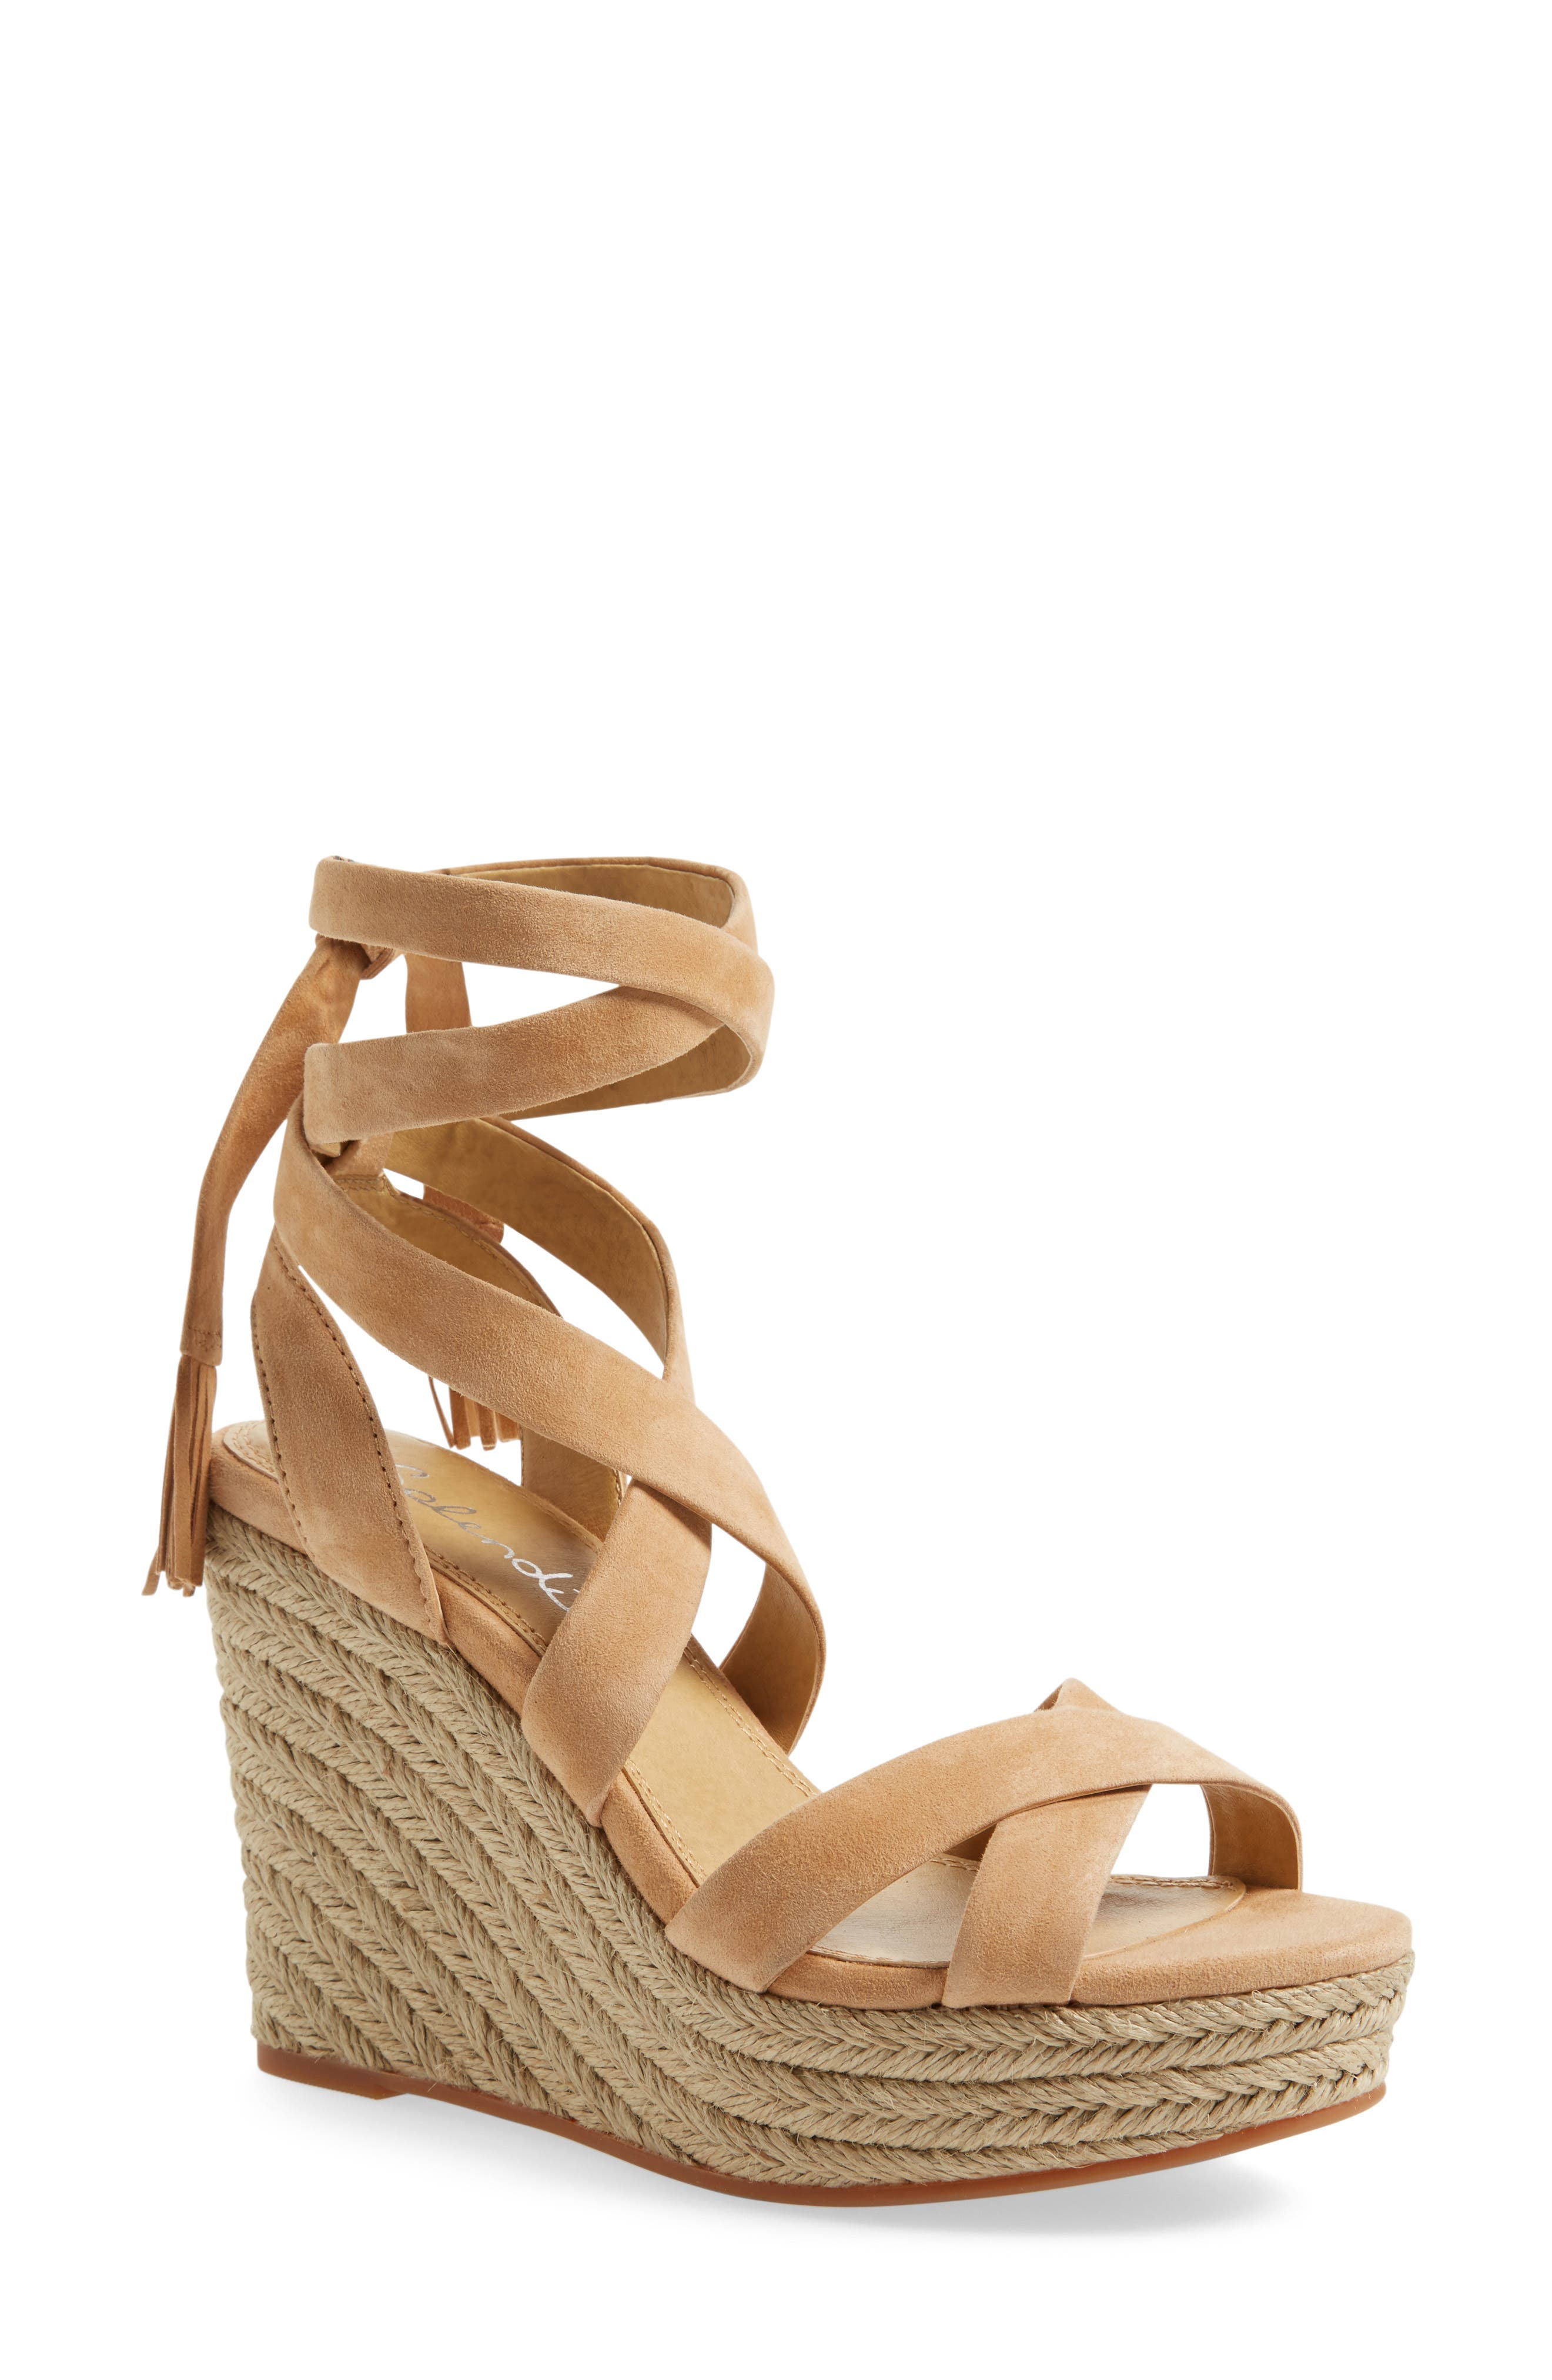 Janice Espadrille Wedge Sandal,                             Main thumbnail 1, color,                             Nude Suede